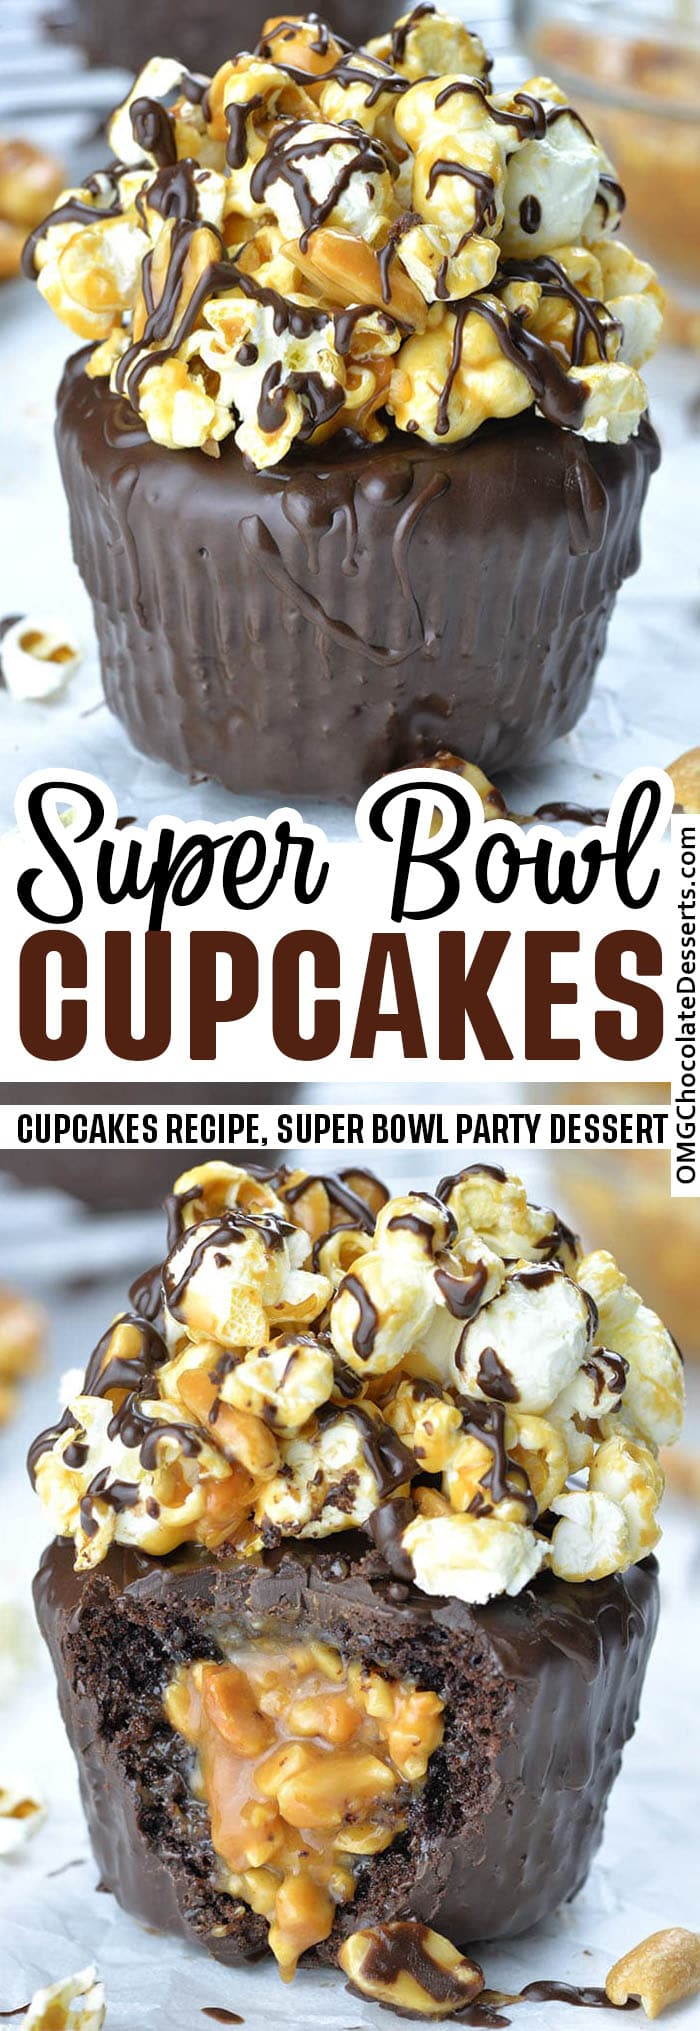 Super Bowl Cupcakes - Nothing tastes sweeter than a Super Bowl win, but these delicious chocolate cupcakes with salted caramel, peanuts and popcorn come pretty close!